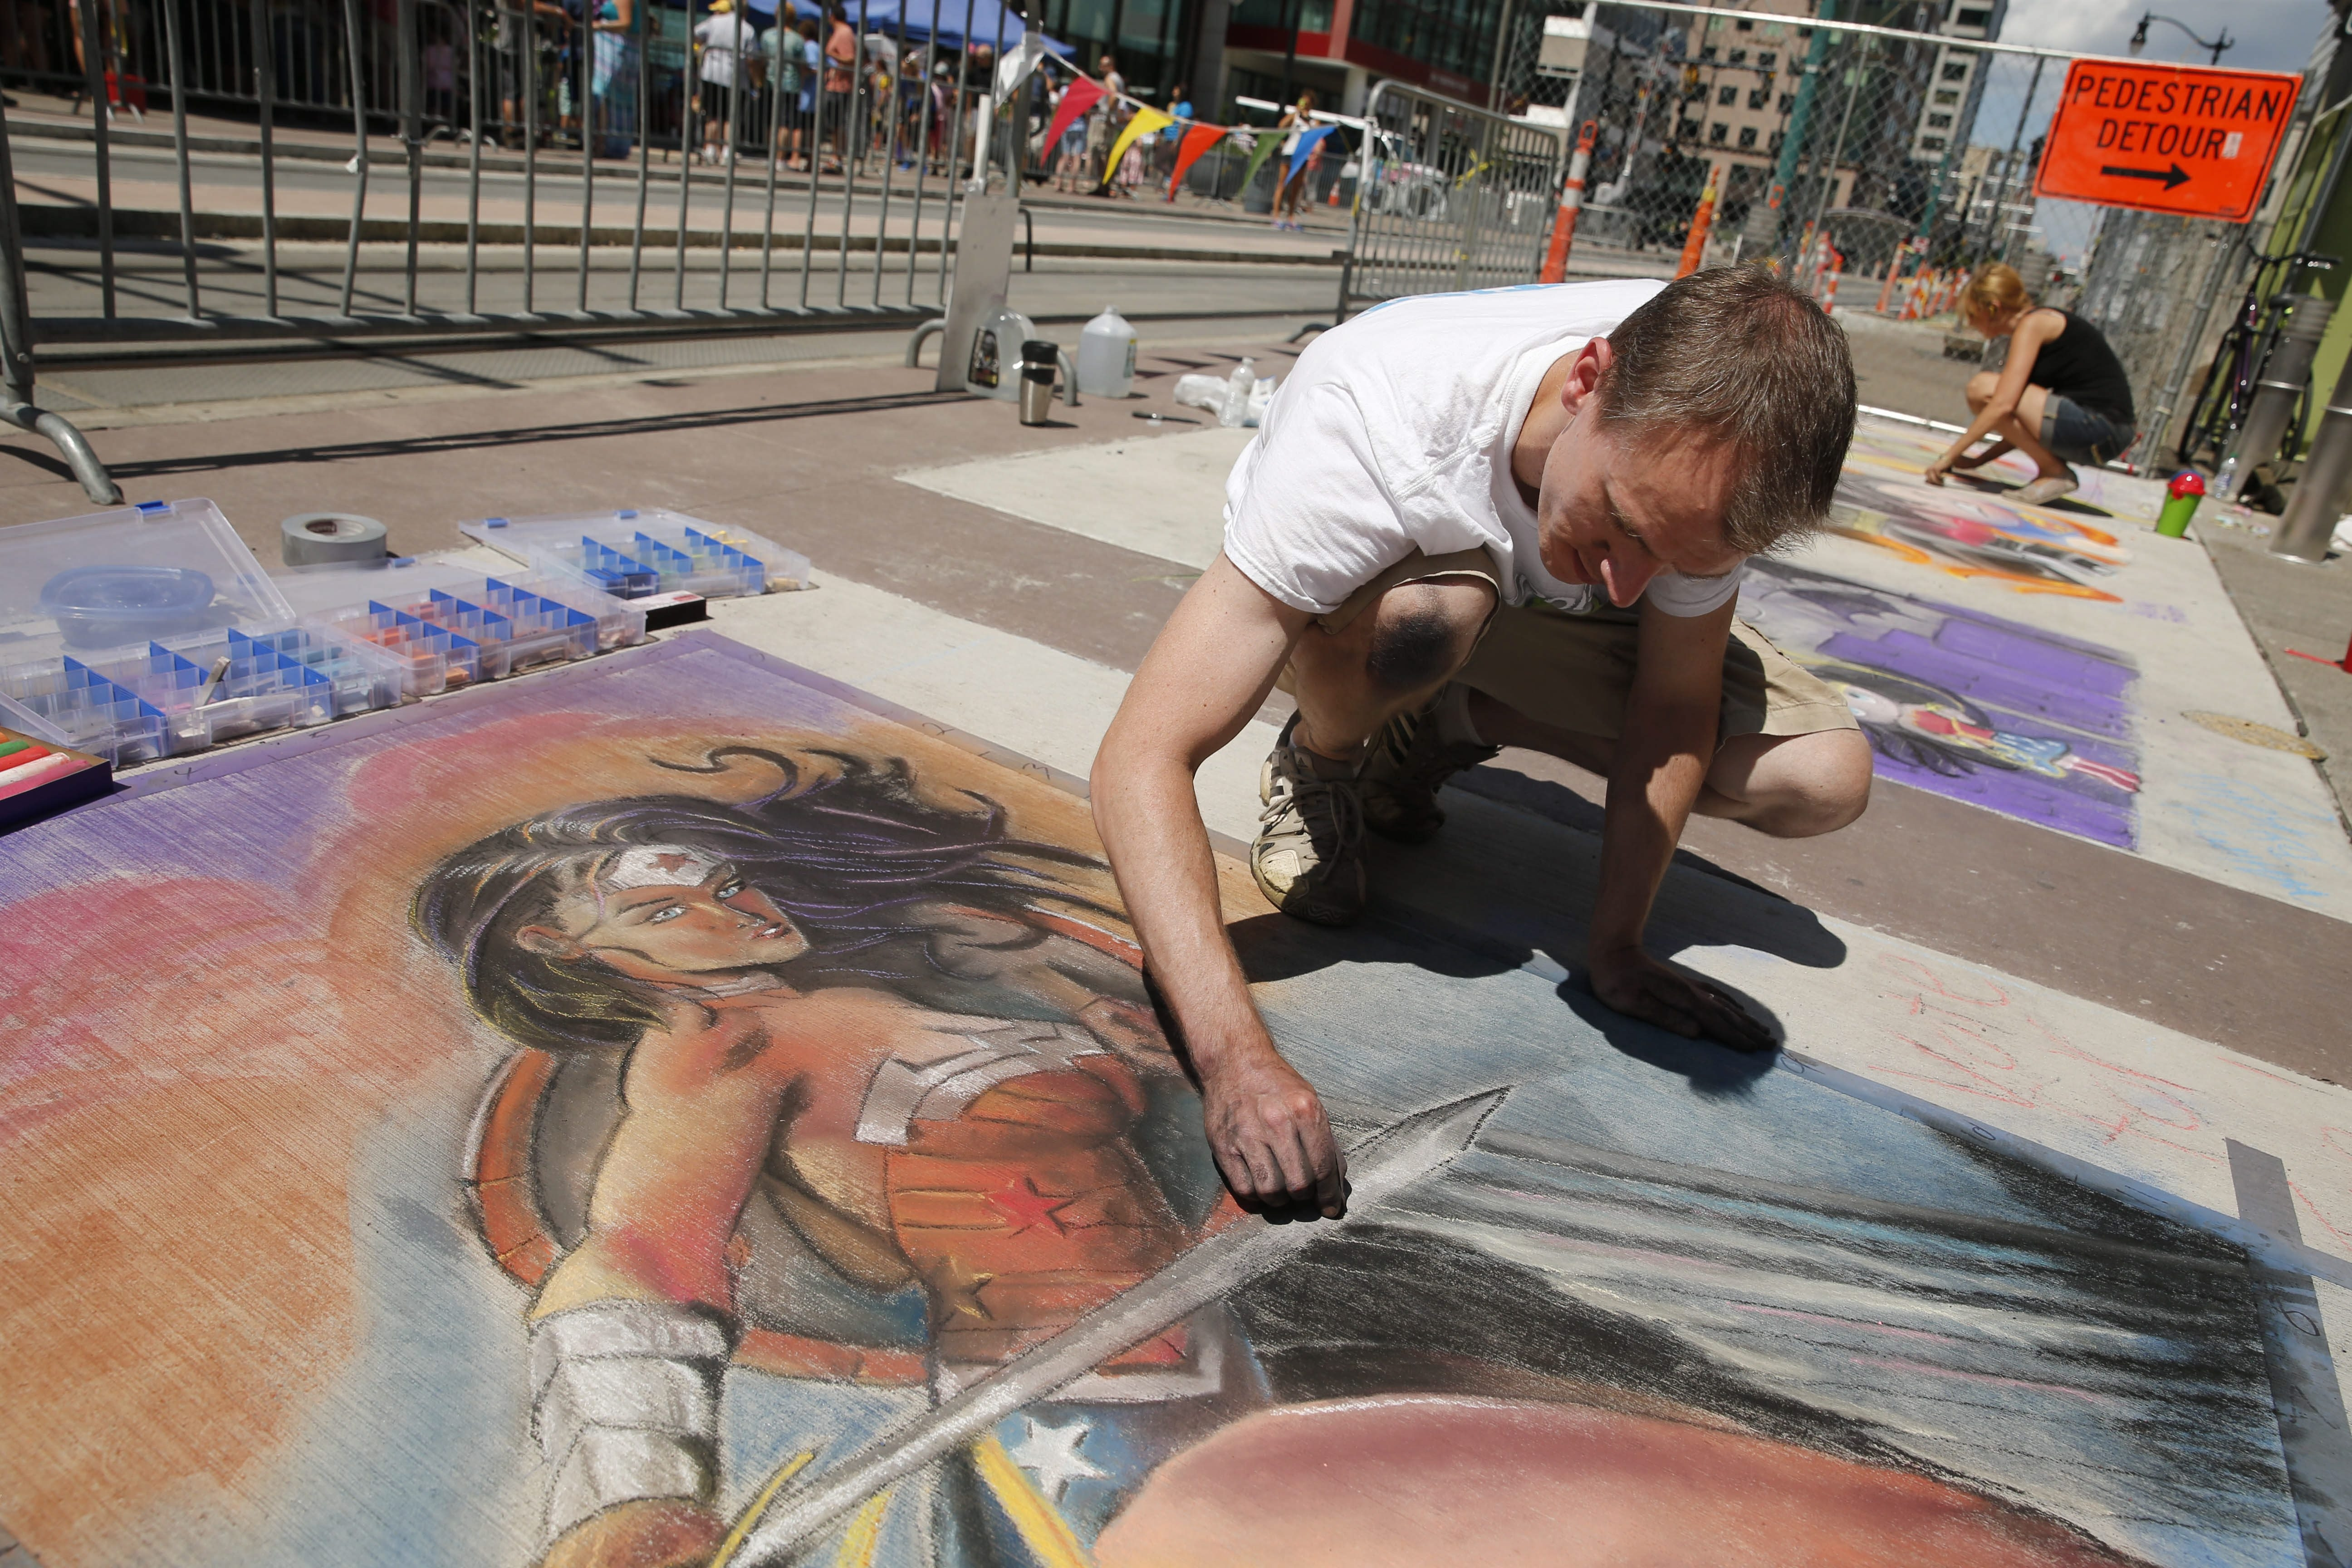 Joe Mahley of Lockport draws Wonder Woman at ChalkFest Buffalo on the 500 block of Main Street, Saturday, Aug. 1, 2015.  (Derek Gee/Buffalo News)